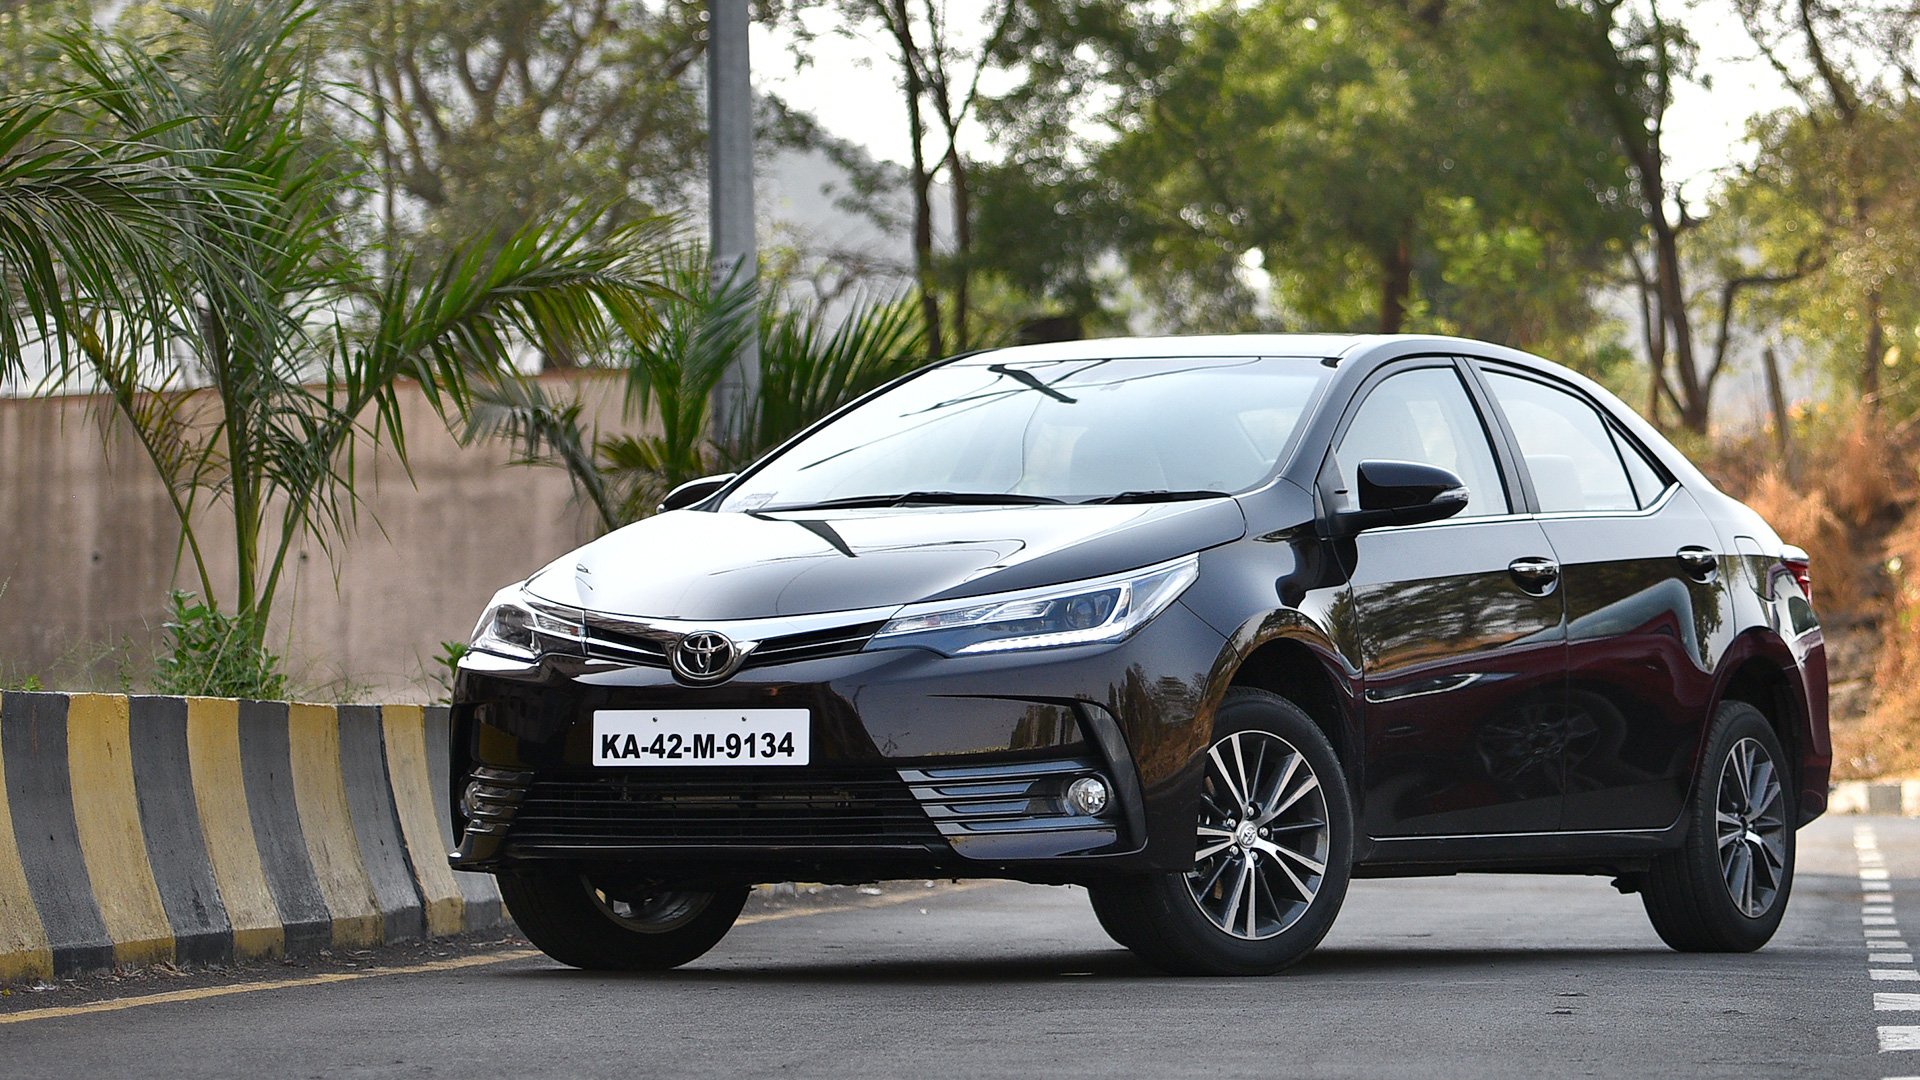 100 toyota corolla 2017 interior 2017 toyota corolla redesign images car images 2017. Black Bedroom Furniture Sets. Home Design Ideas